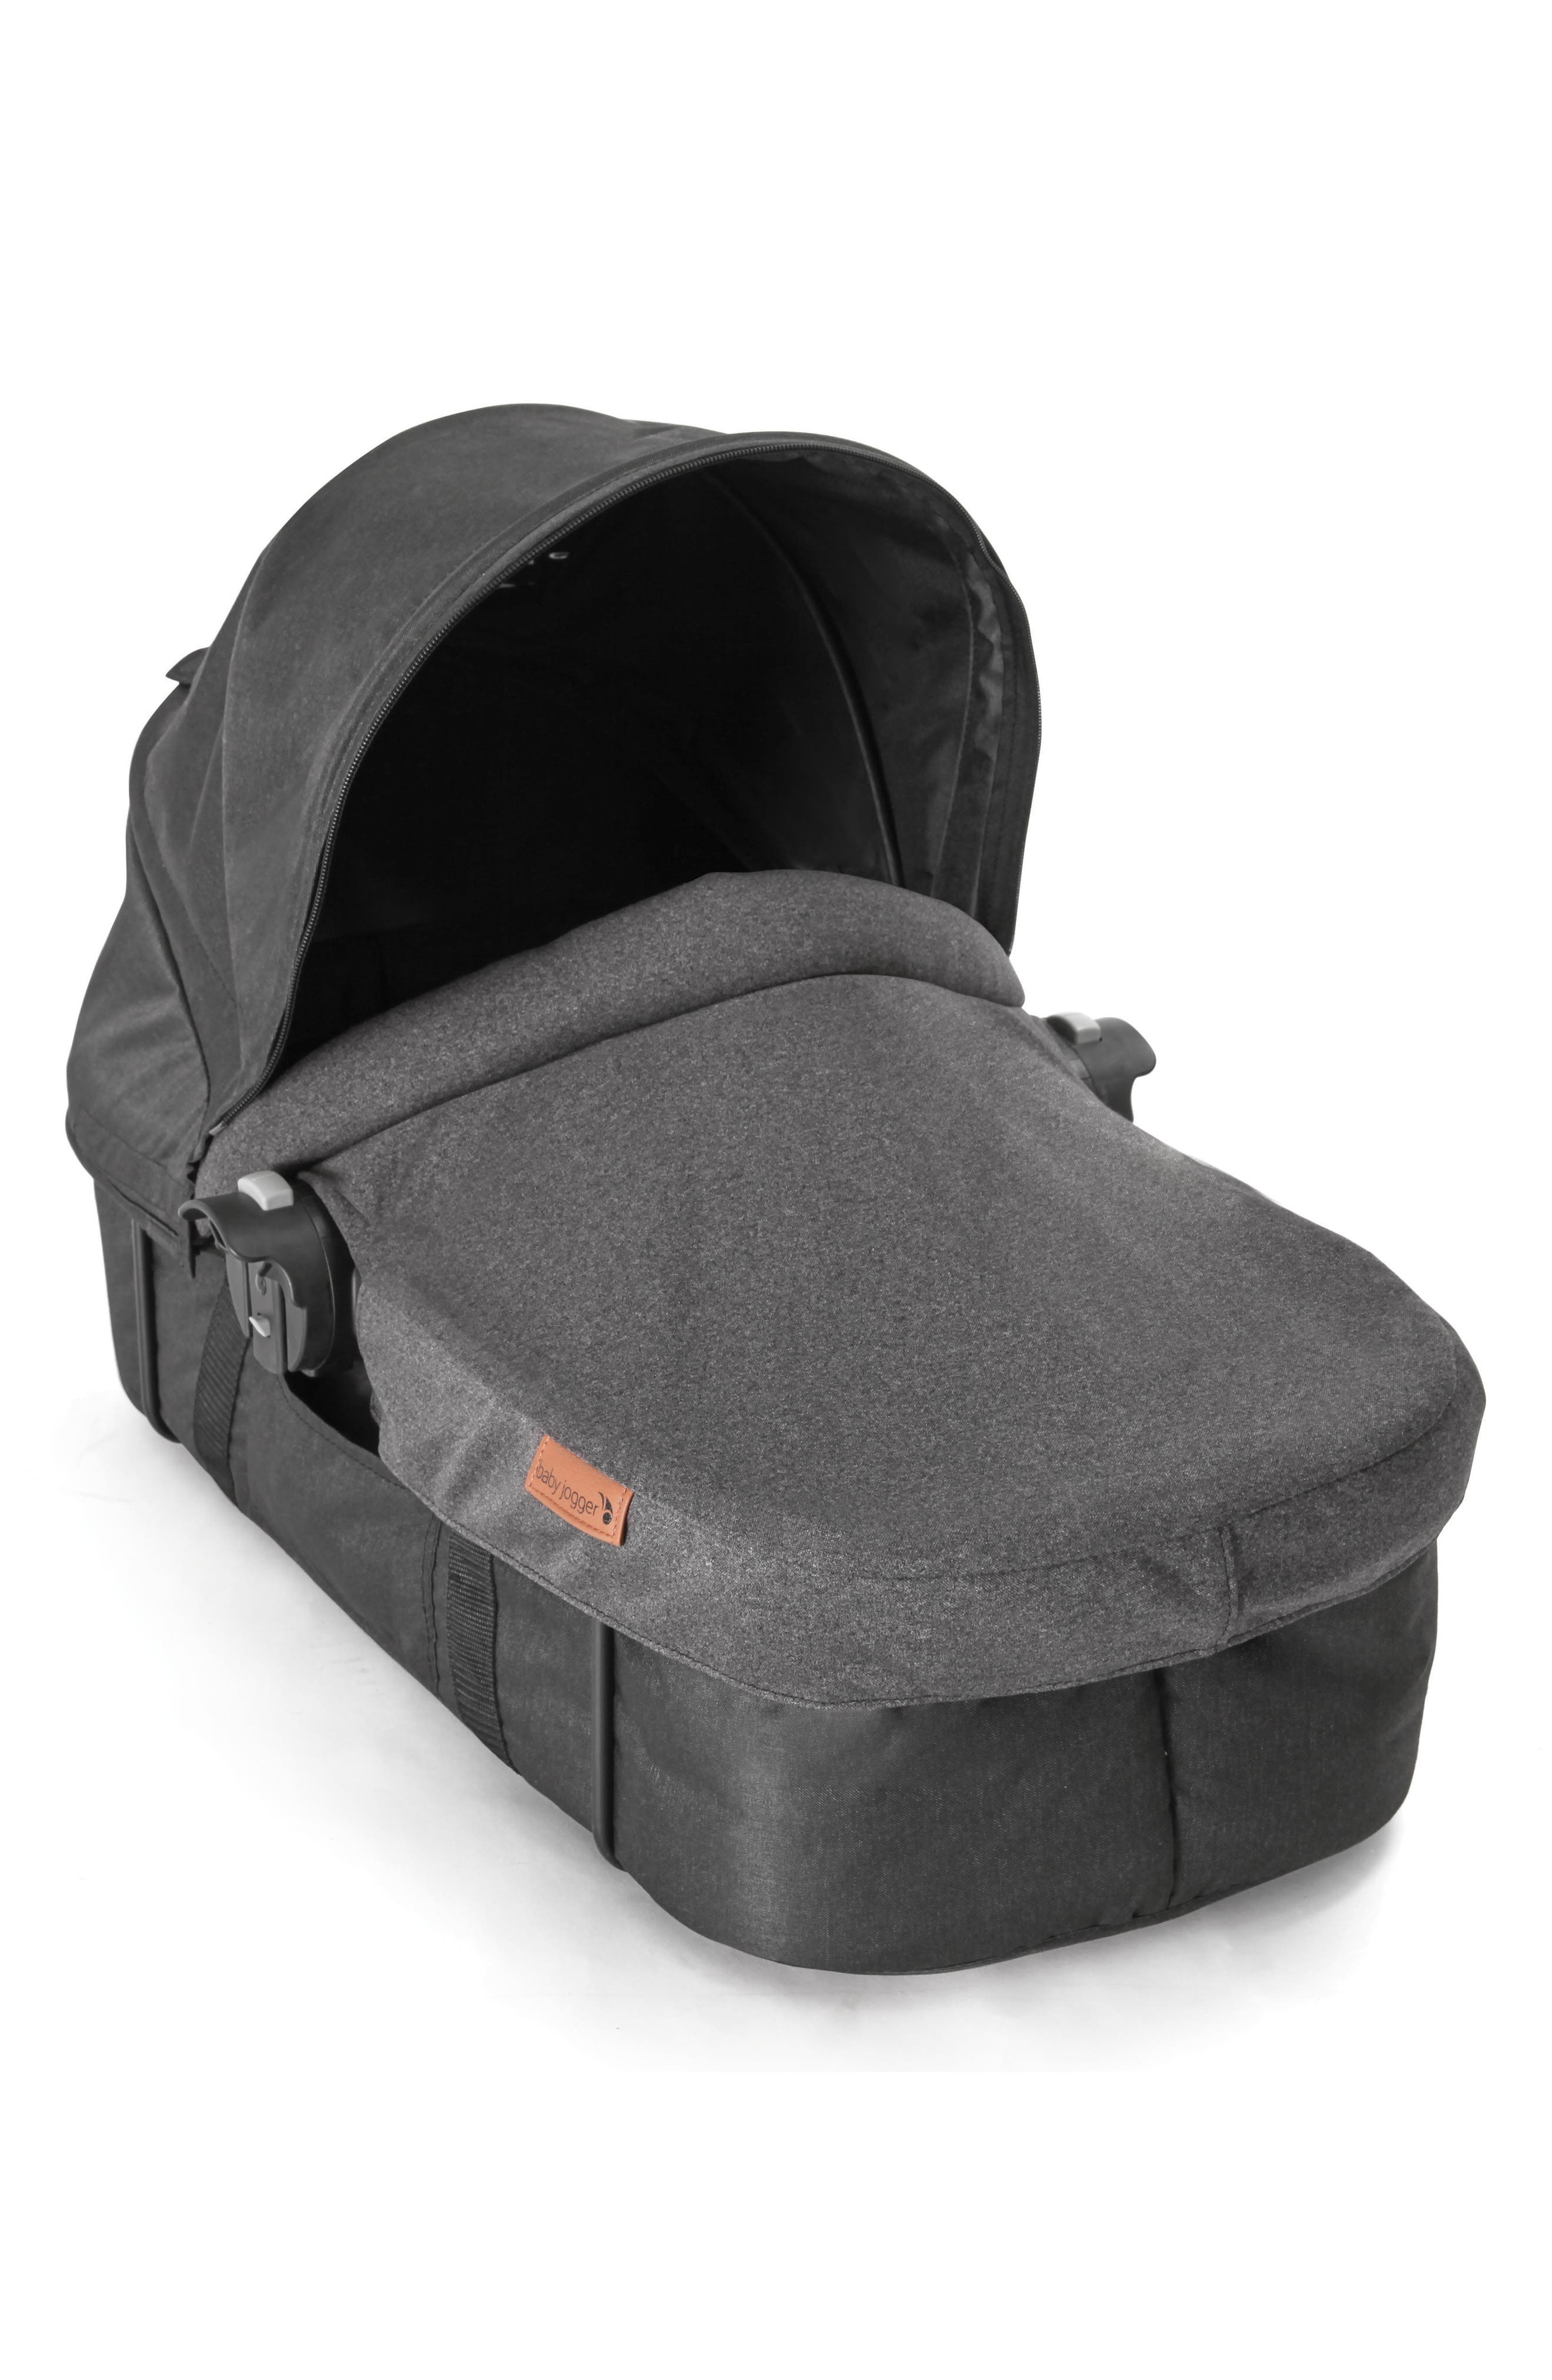 Deluxe Pram Converter Kit for City Select<sup>®</sup> 2018 Stroller,                         Main,                         color, 020